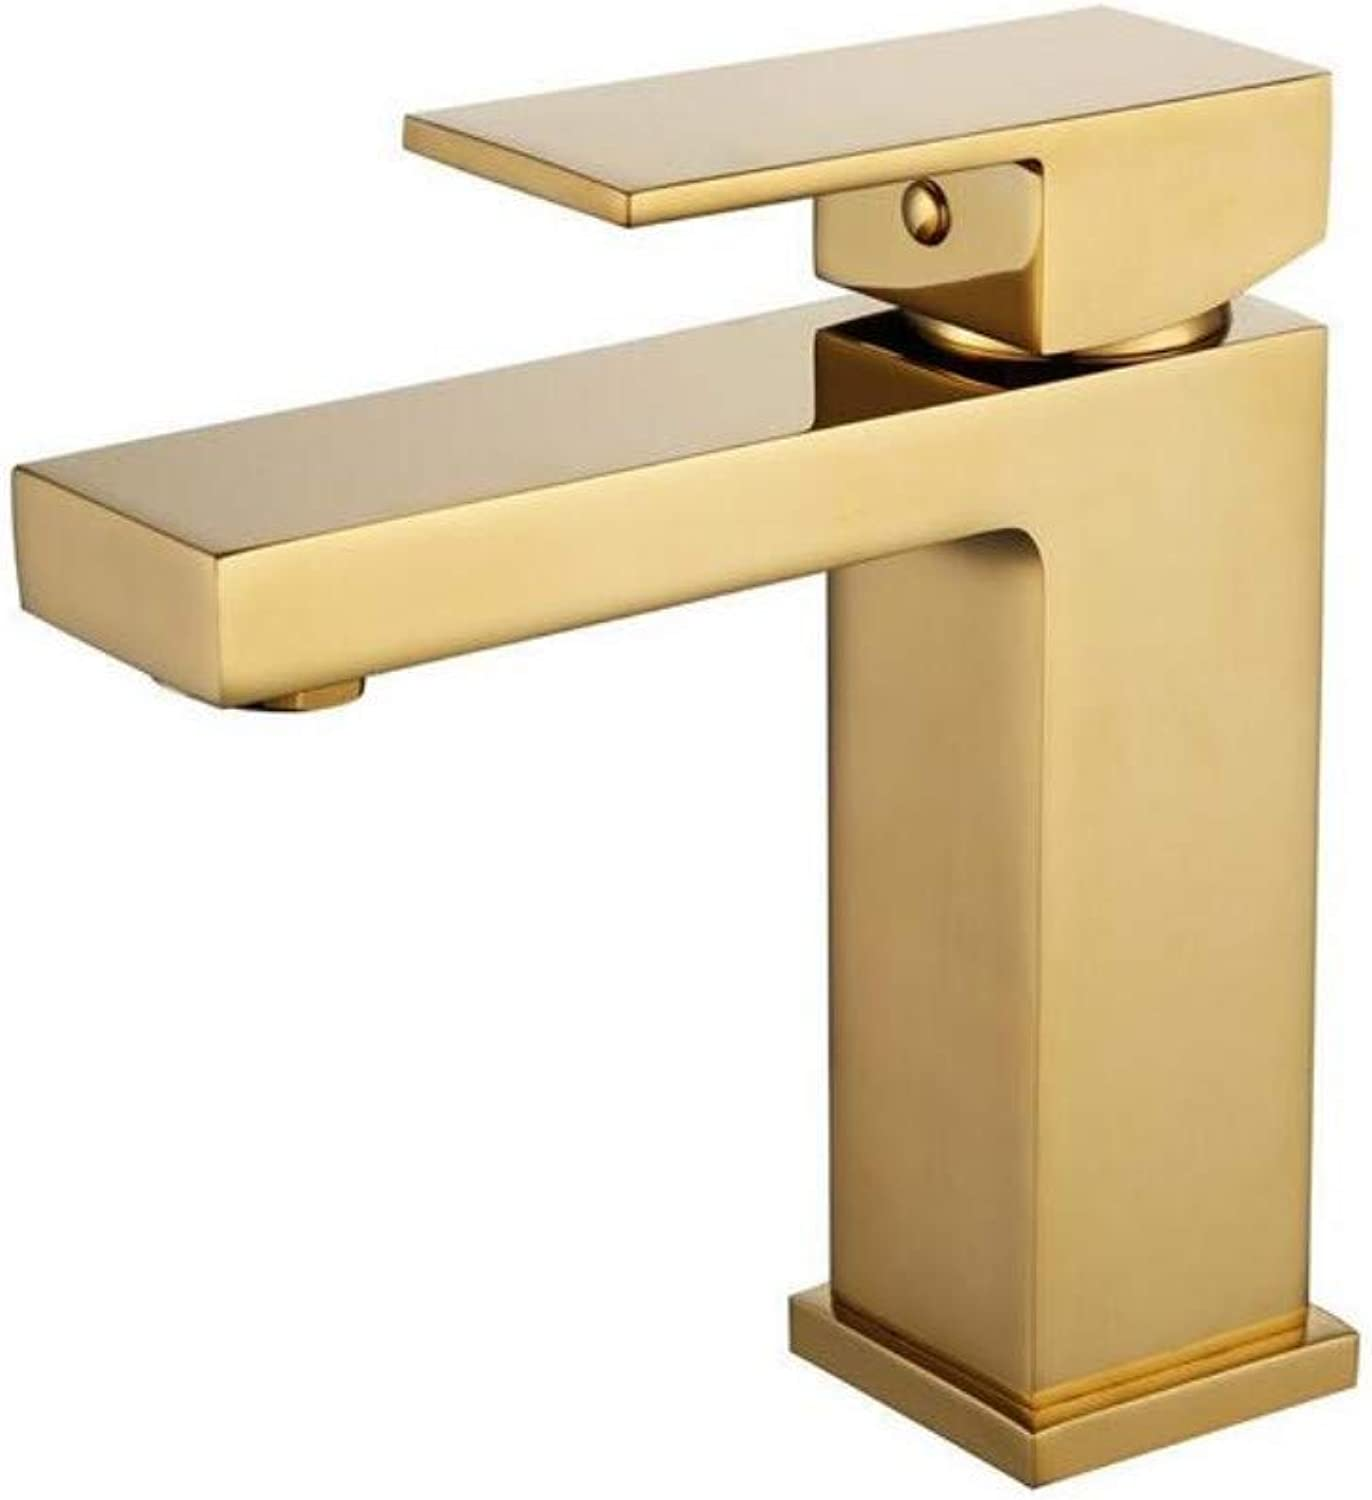 Chrome-Plated Adjustable Temperature-Sensitive Led Faucetfaucet Bathroom Small Basin Tap Mixer 100% Solid Brass Newest Luxury Design Deck Mount